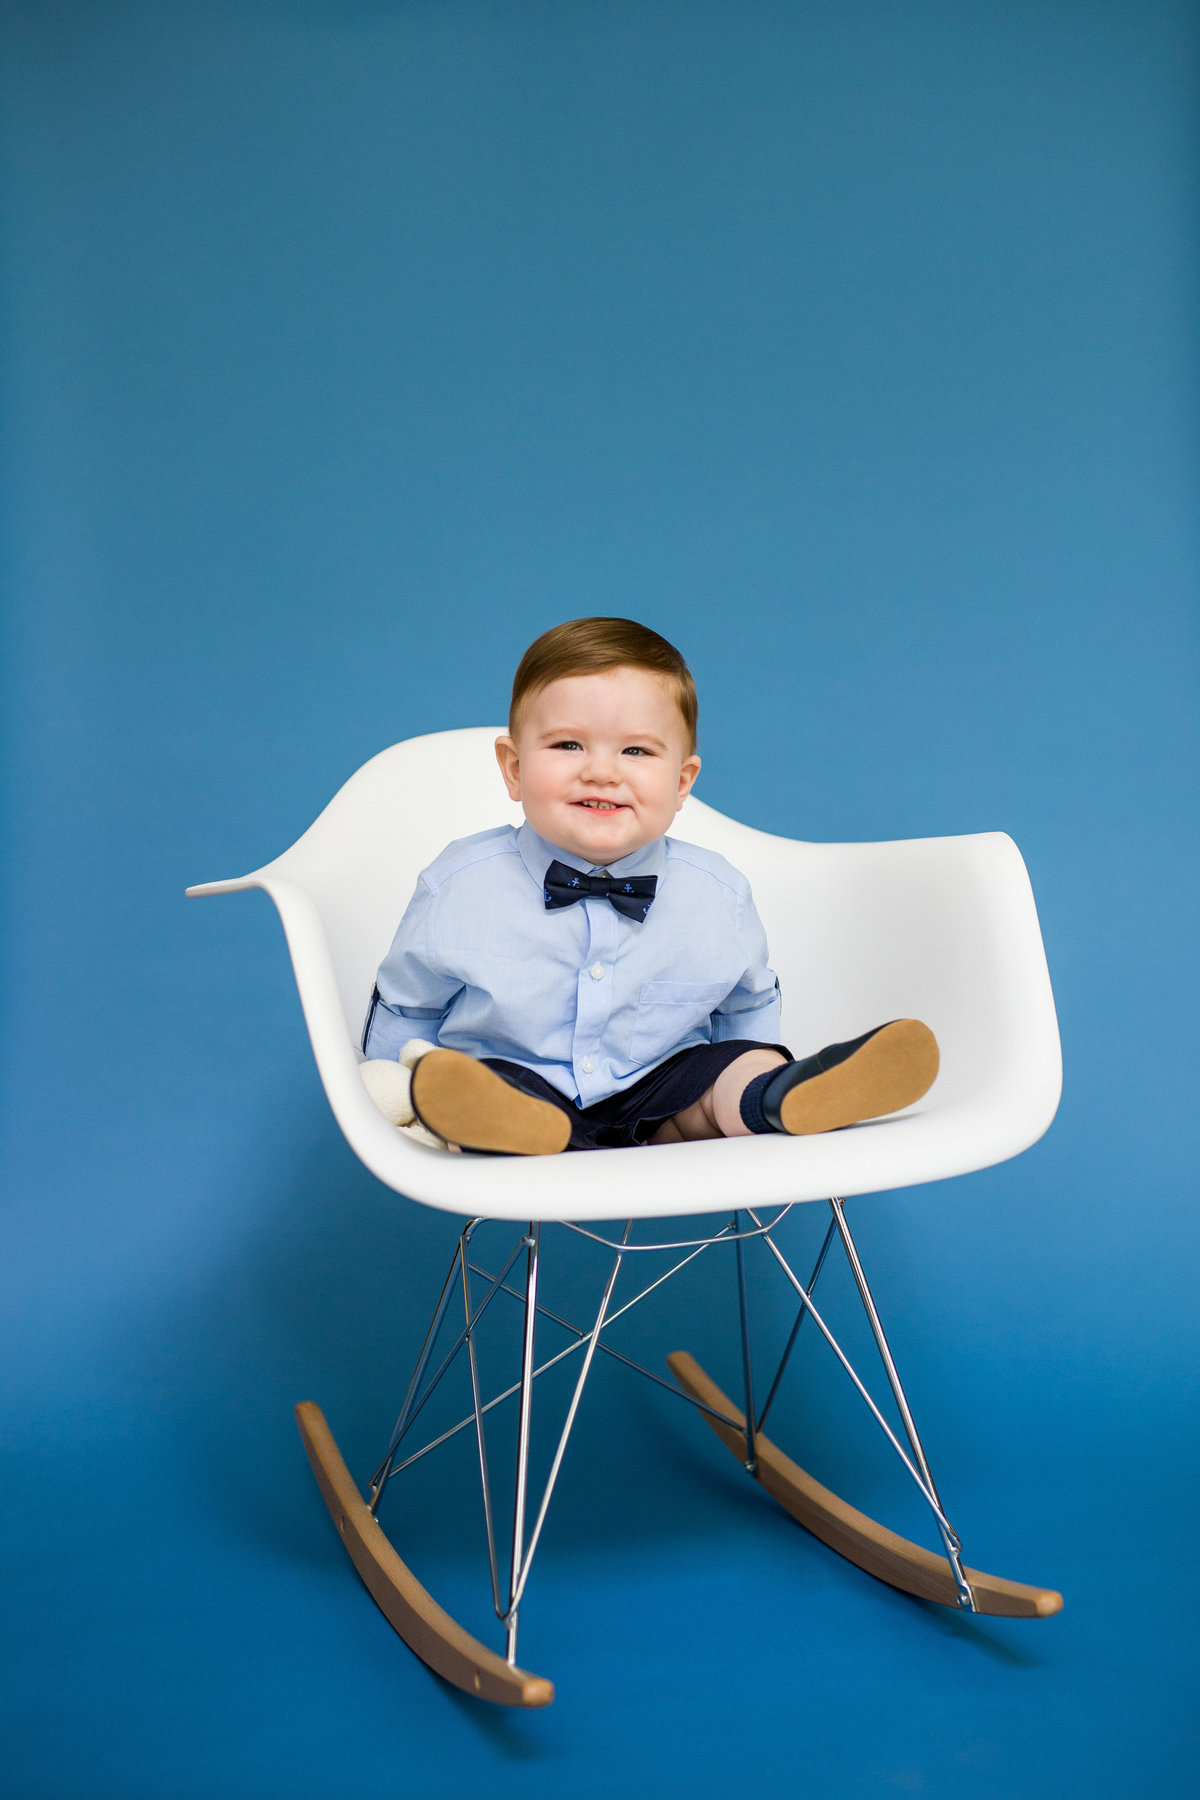 Baby sitting in Eames Molded Plastic Armchair Rocker chair on blue backdrop for baby's first year photography session.